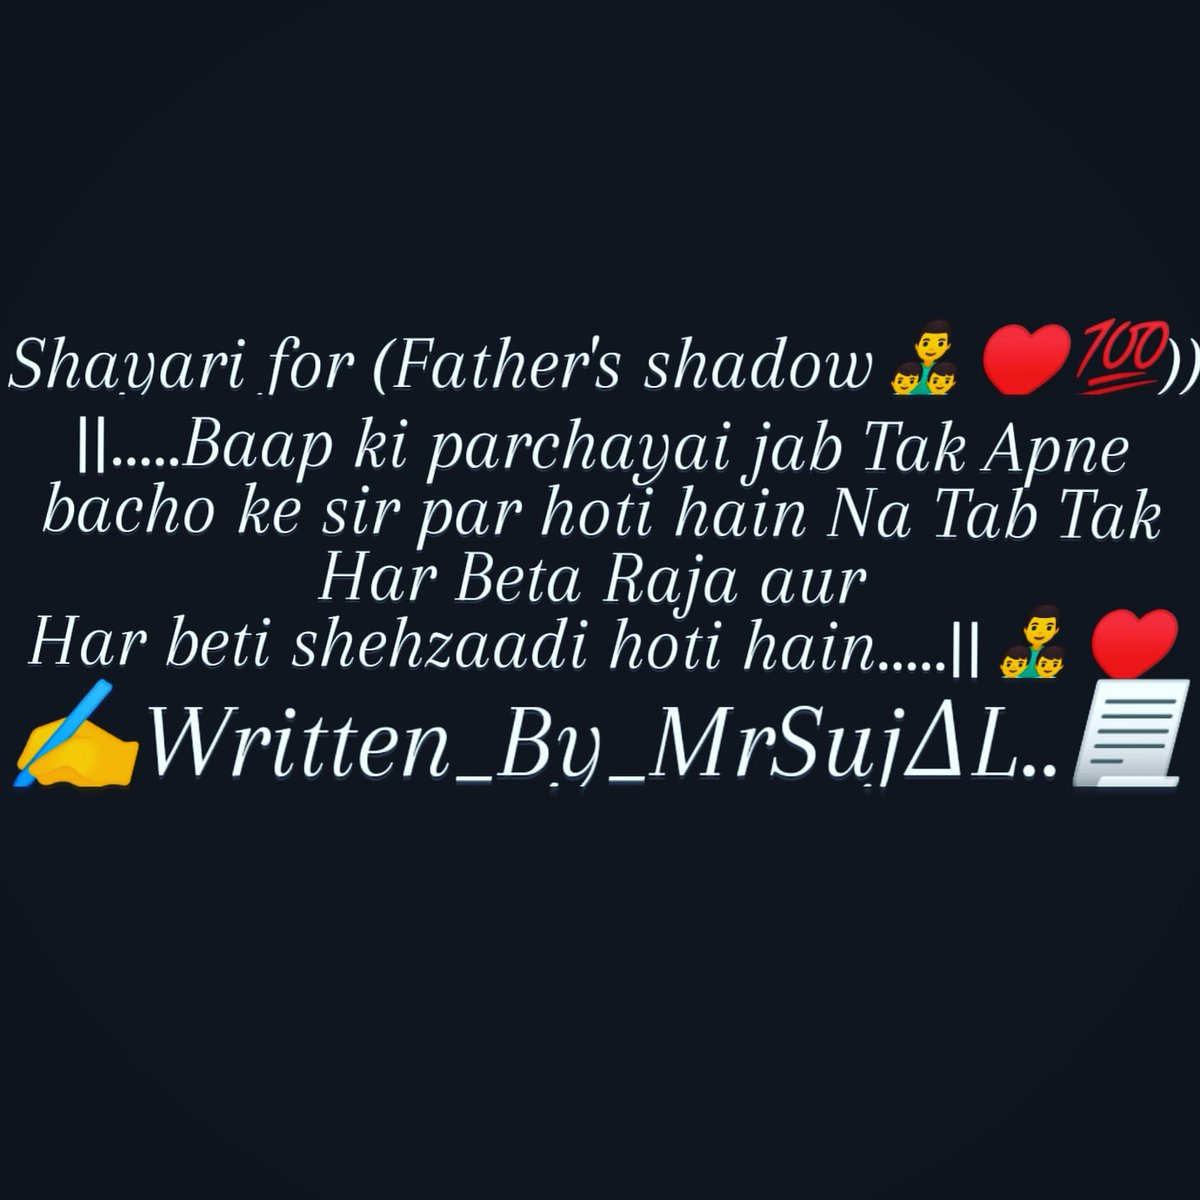 #fathers #fathersday #dad #fatherhood #love #father #family #dads #dadlife #daddy #fatherandson #happyfathersday #mothers #fatherson #fatherslove  #fatherdaughter   #nature #portrait #instagood   #shadows #picoftheday #fathersshadow 👨‍👦‍👦♥️💯..!✍️..Written_By_@___sujal___jain___